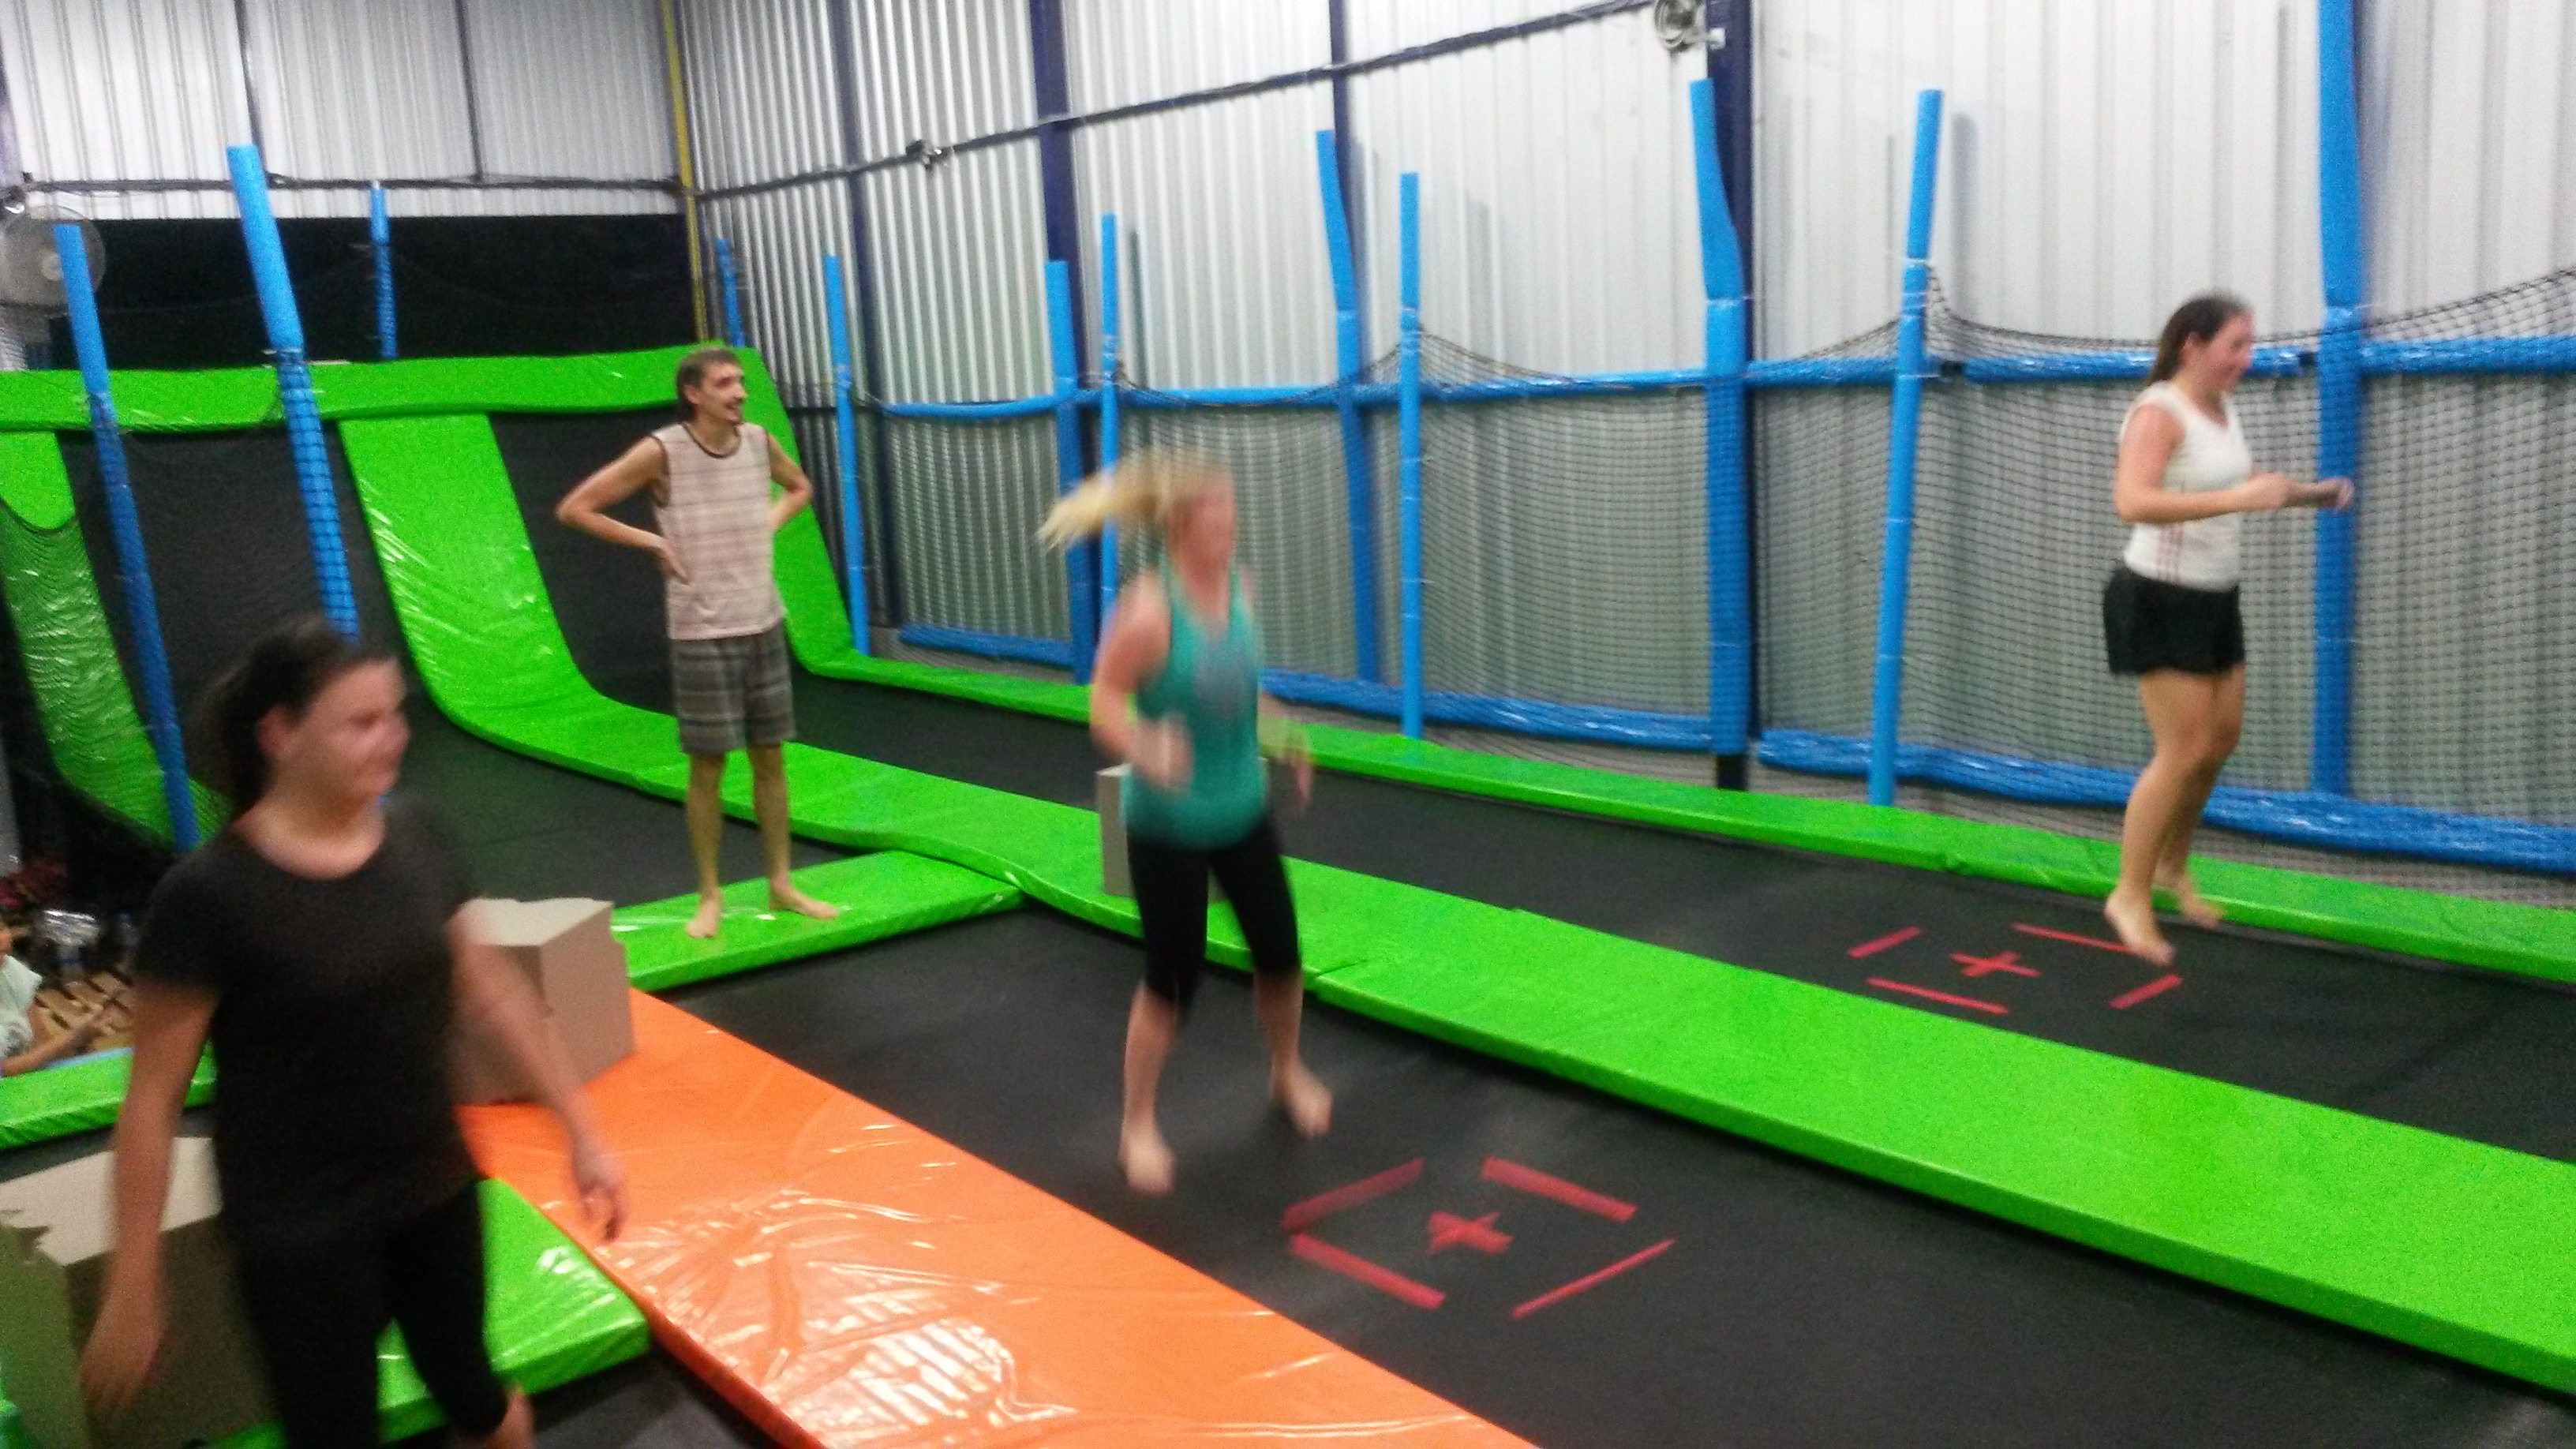 fun and fitness at bangkok s first trampoline park. Black Bedroom Furniture Sets. Home Design Ideas